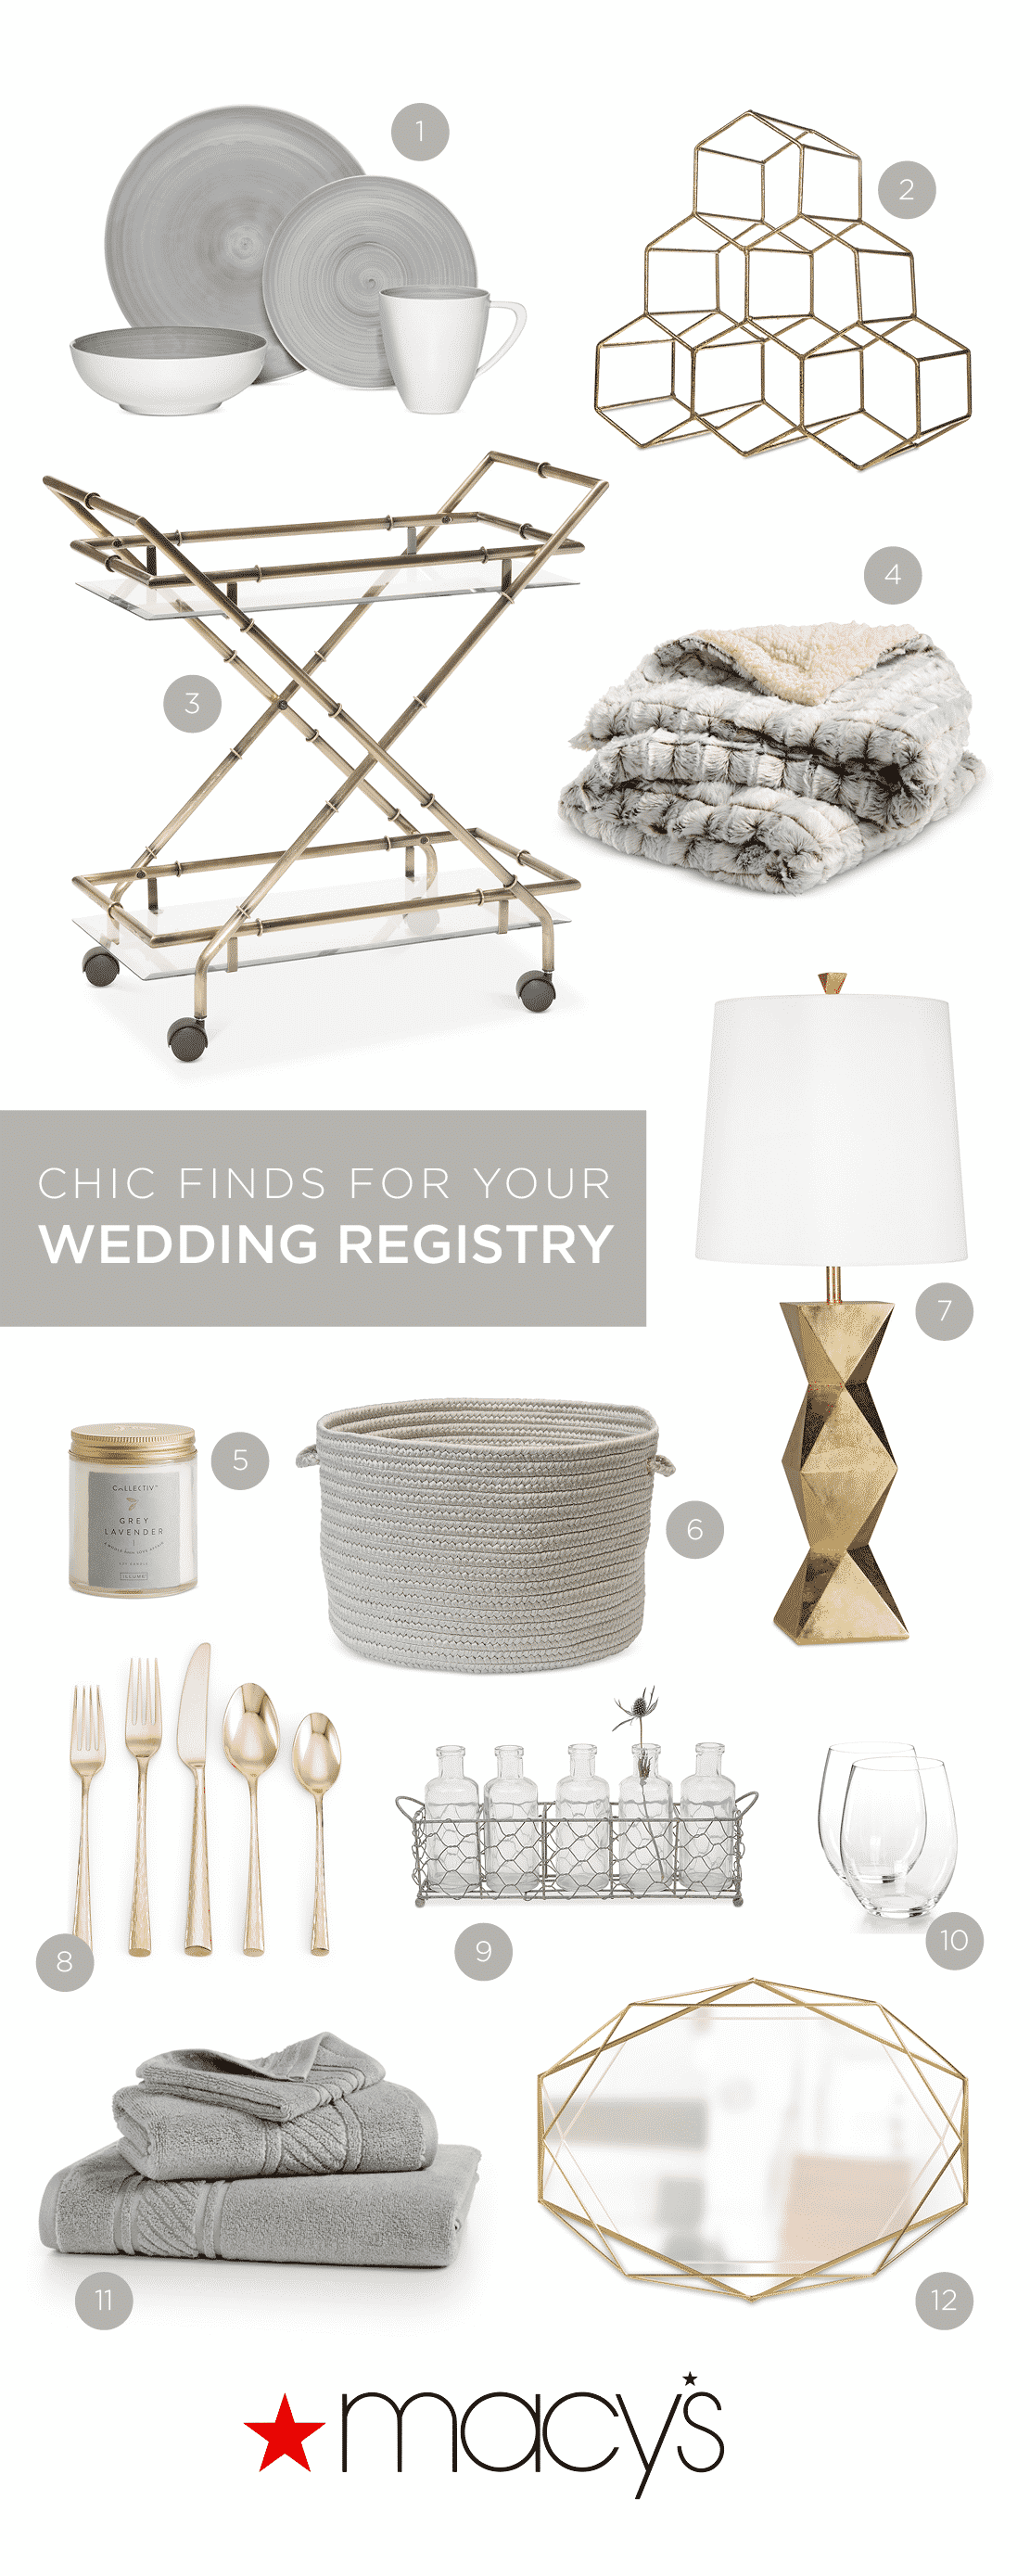 chic finds for your wedding registry from Macy's!